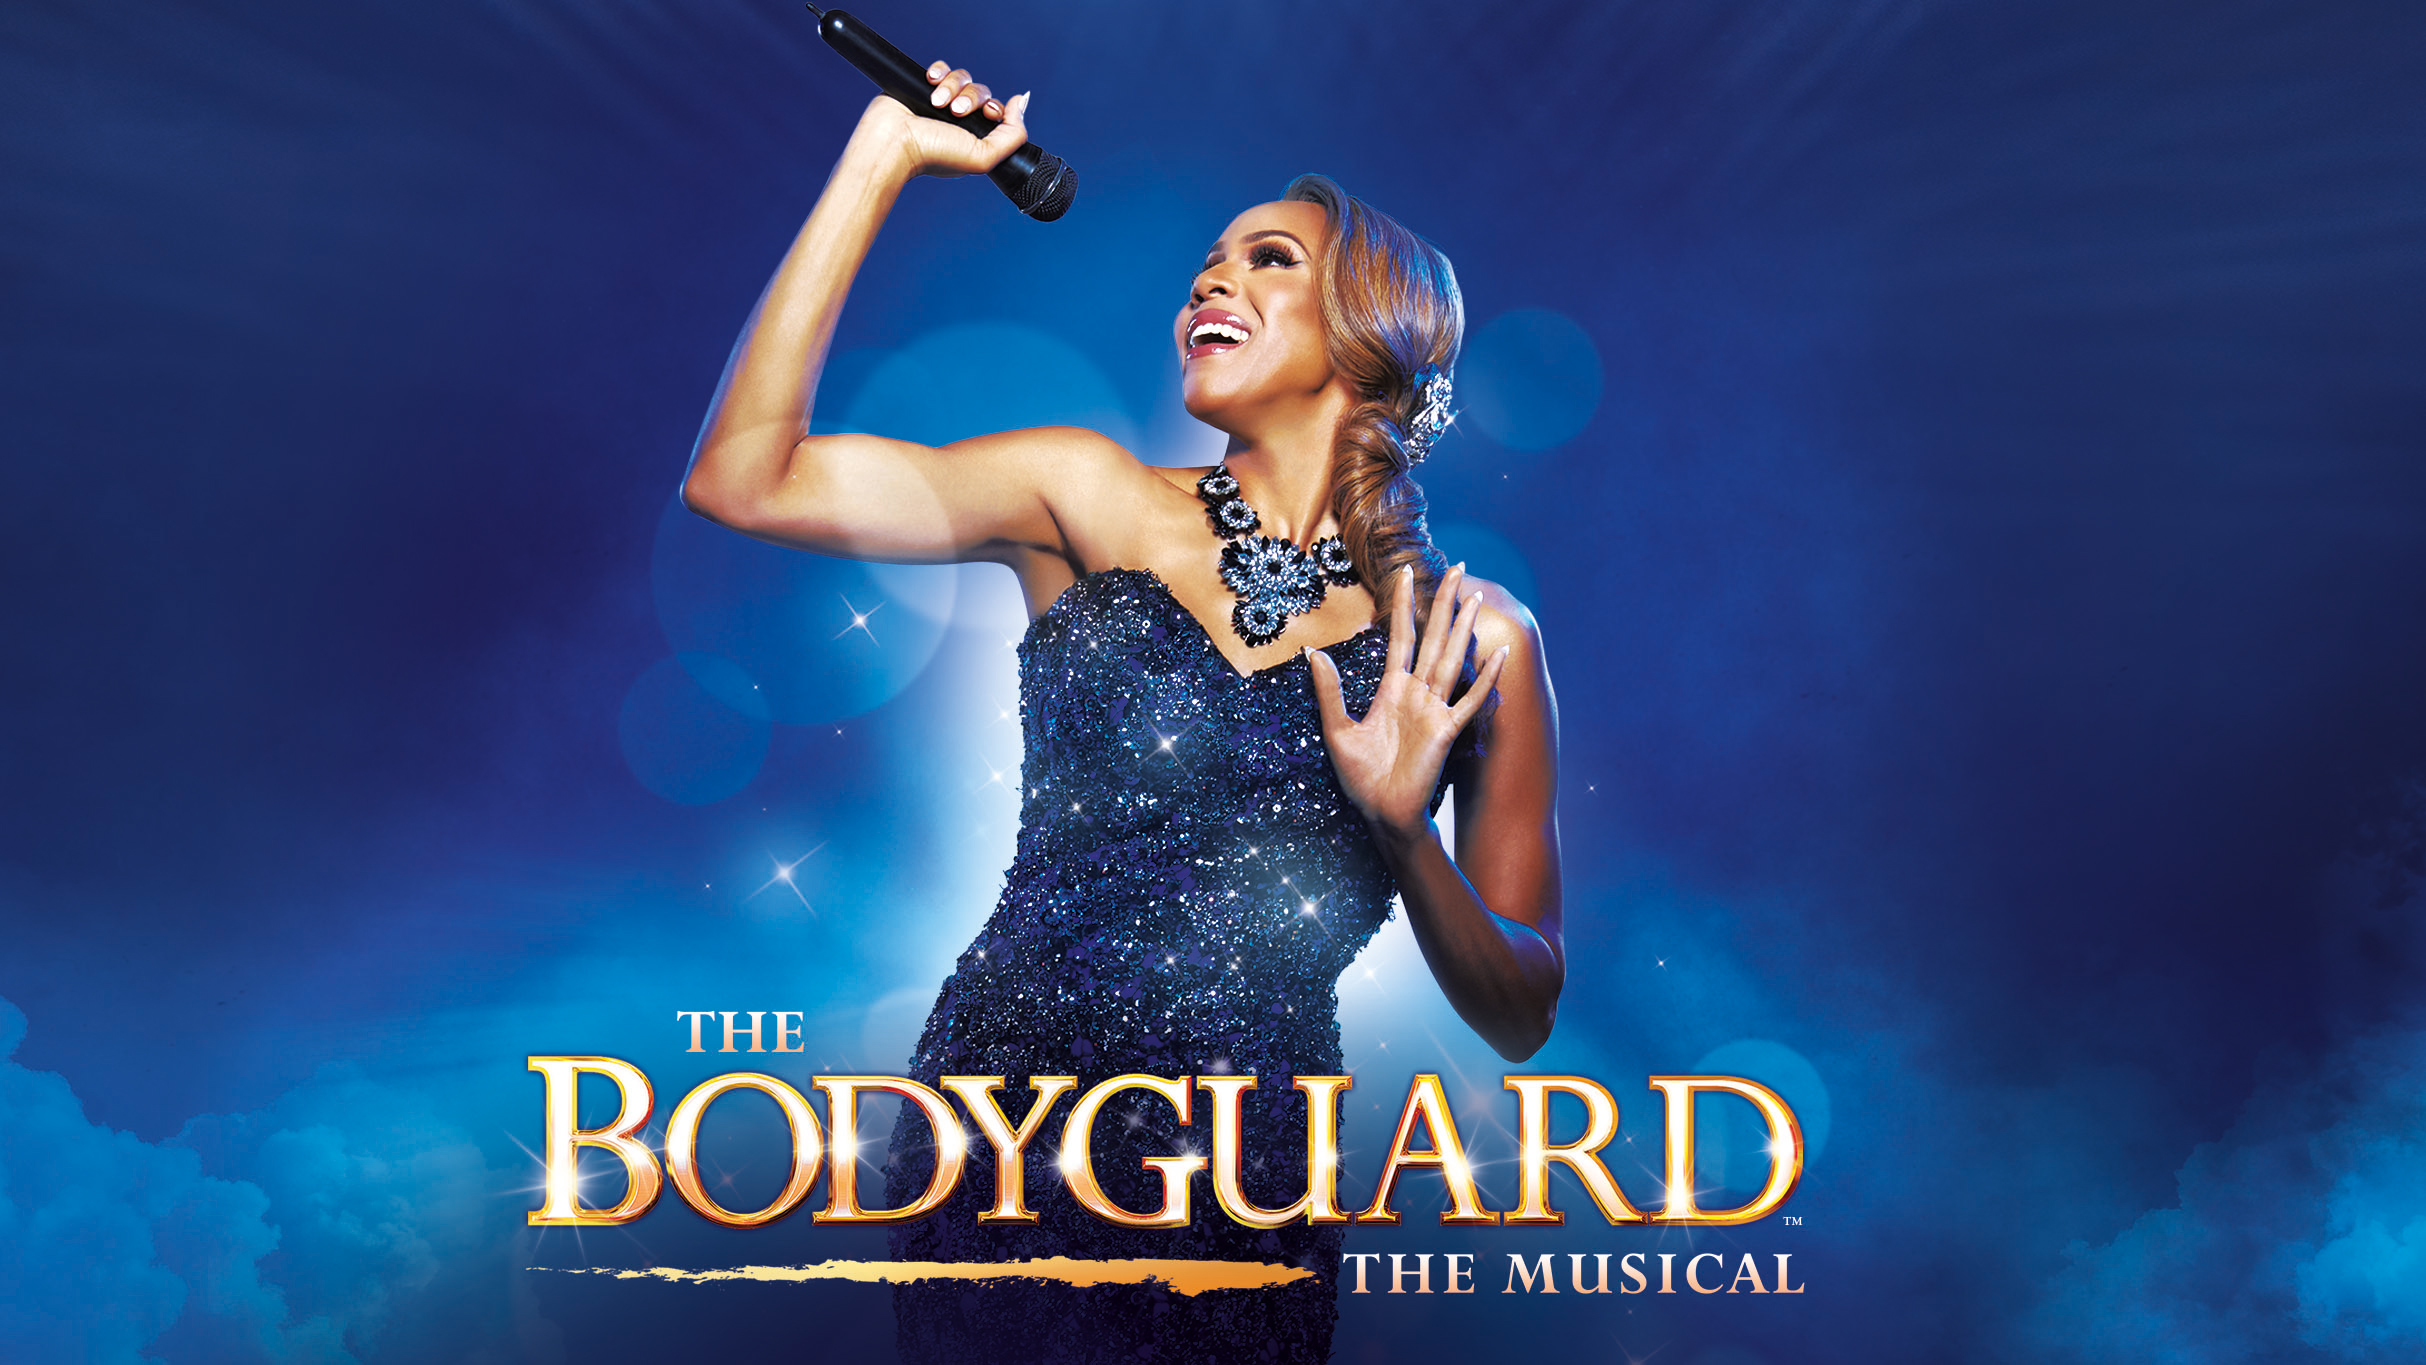 a-the-bodyguard-musical